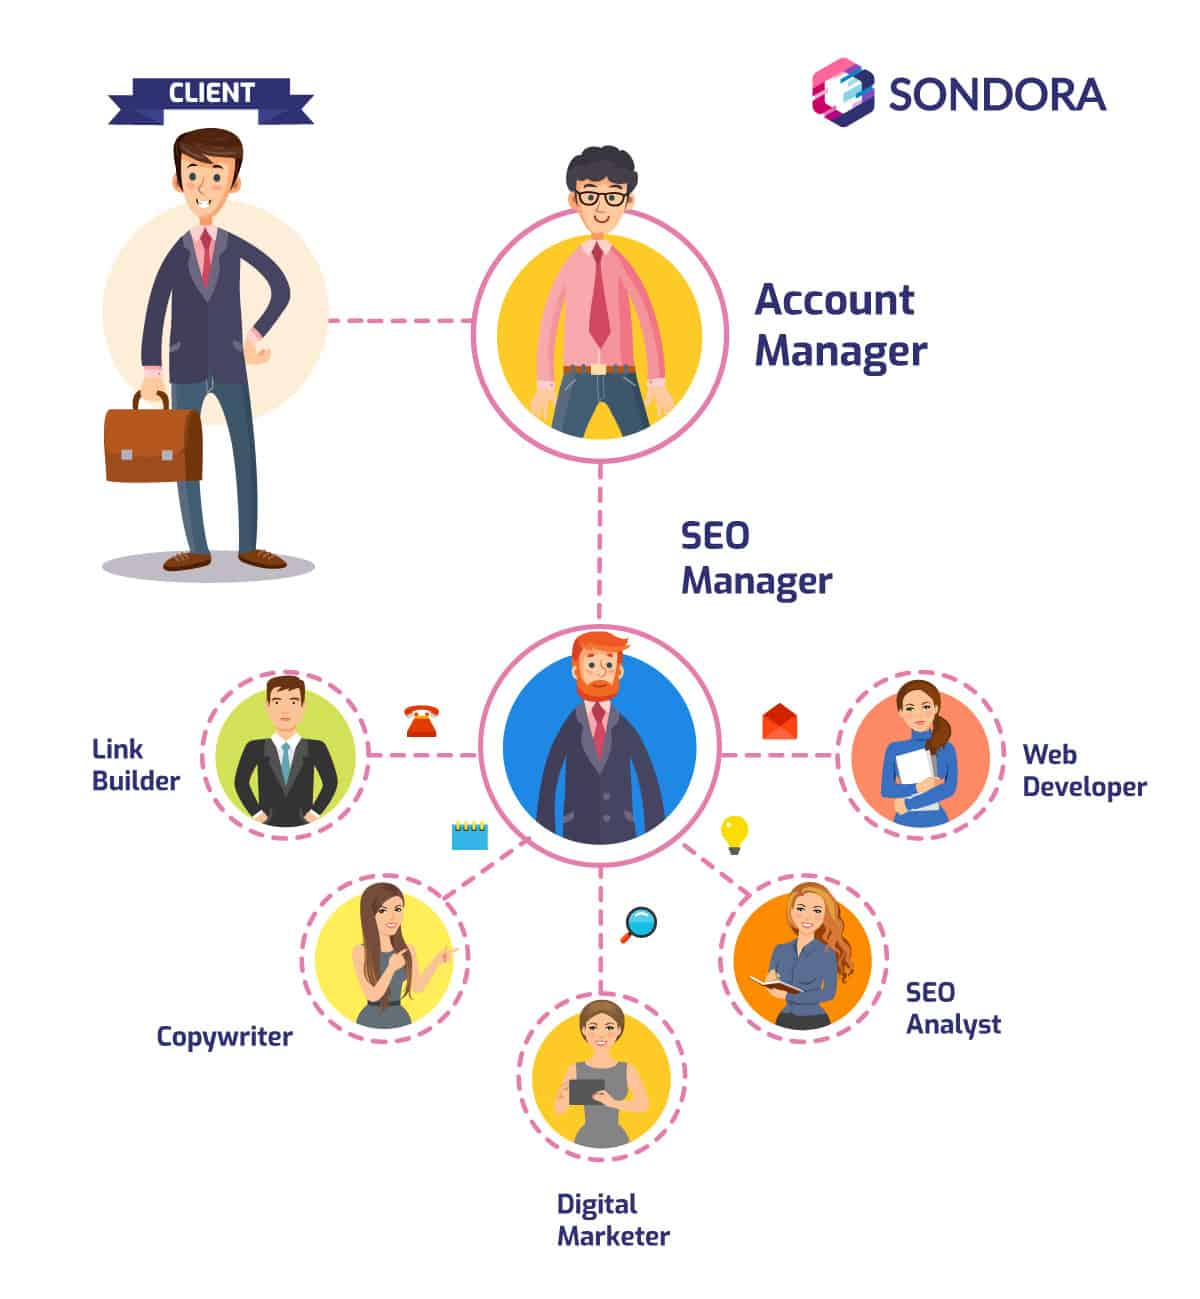 Here is how we structure our SEO engagement squad at SONDORA SA